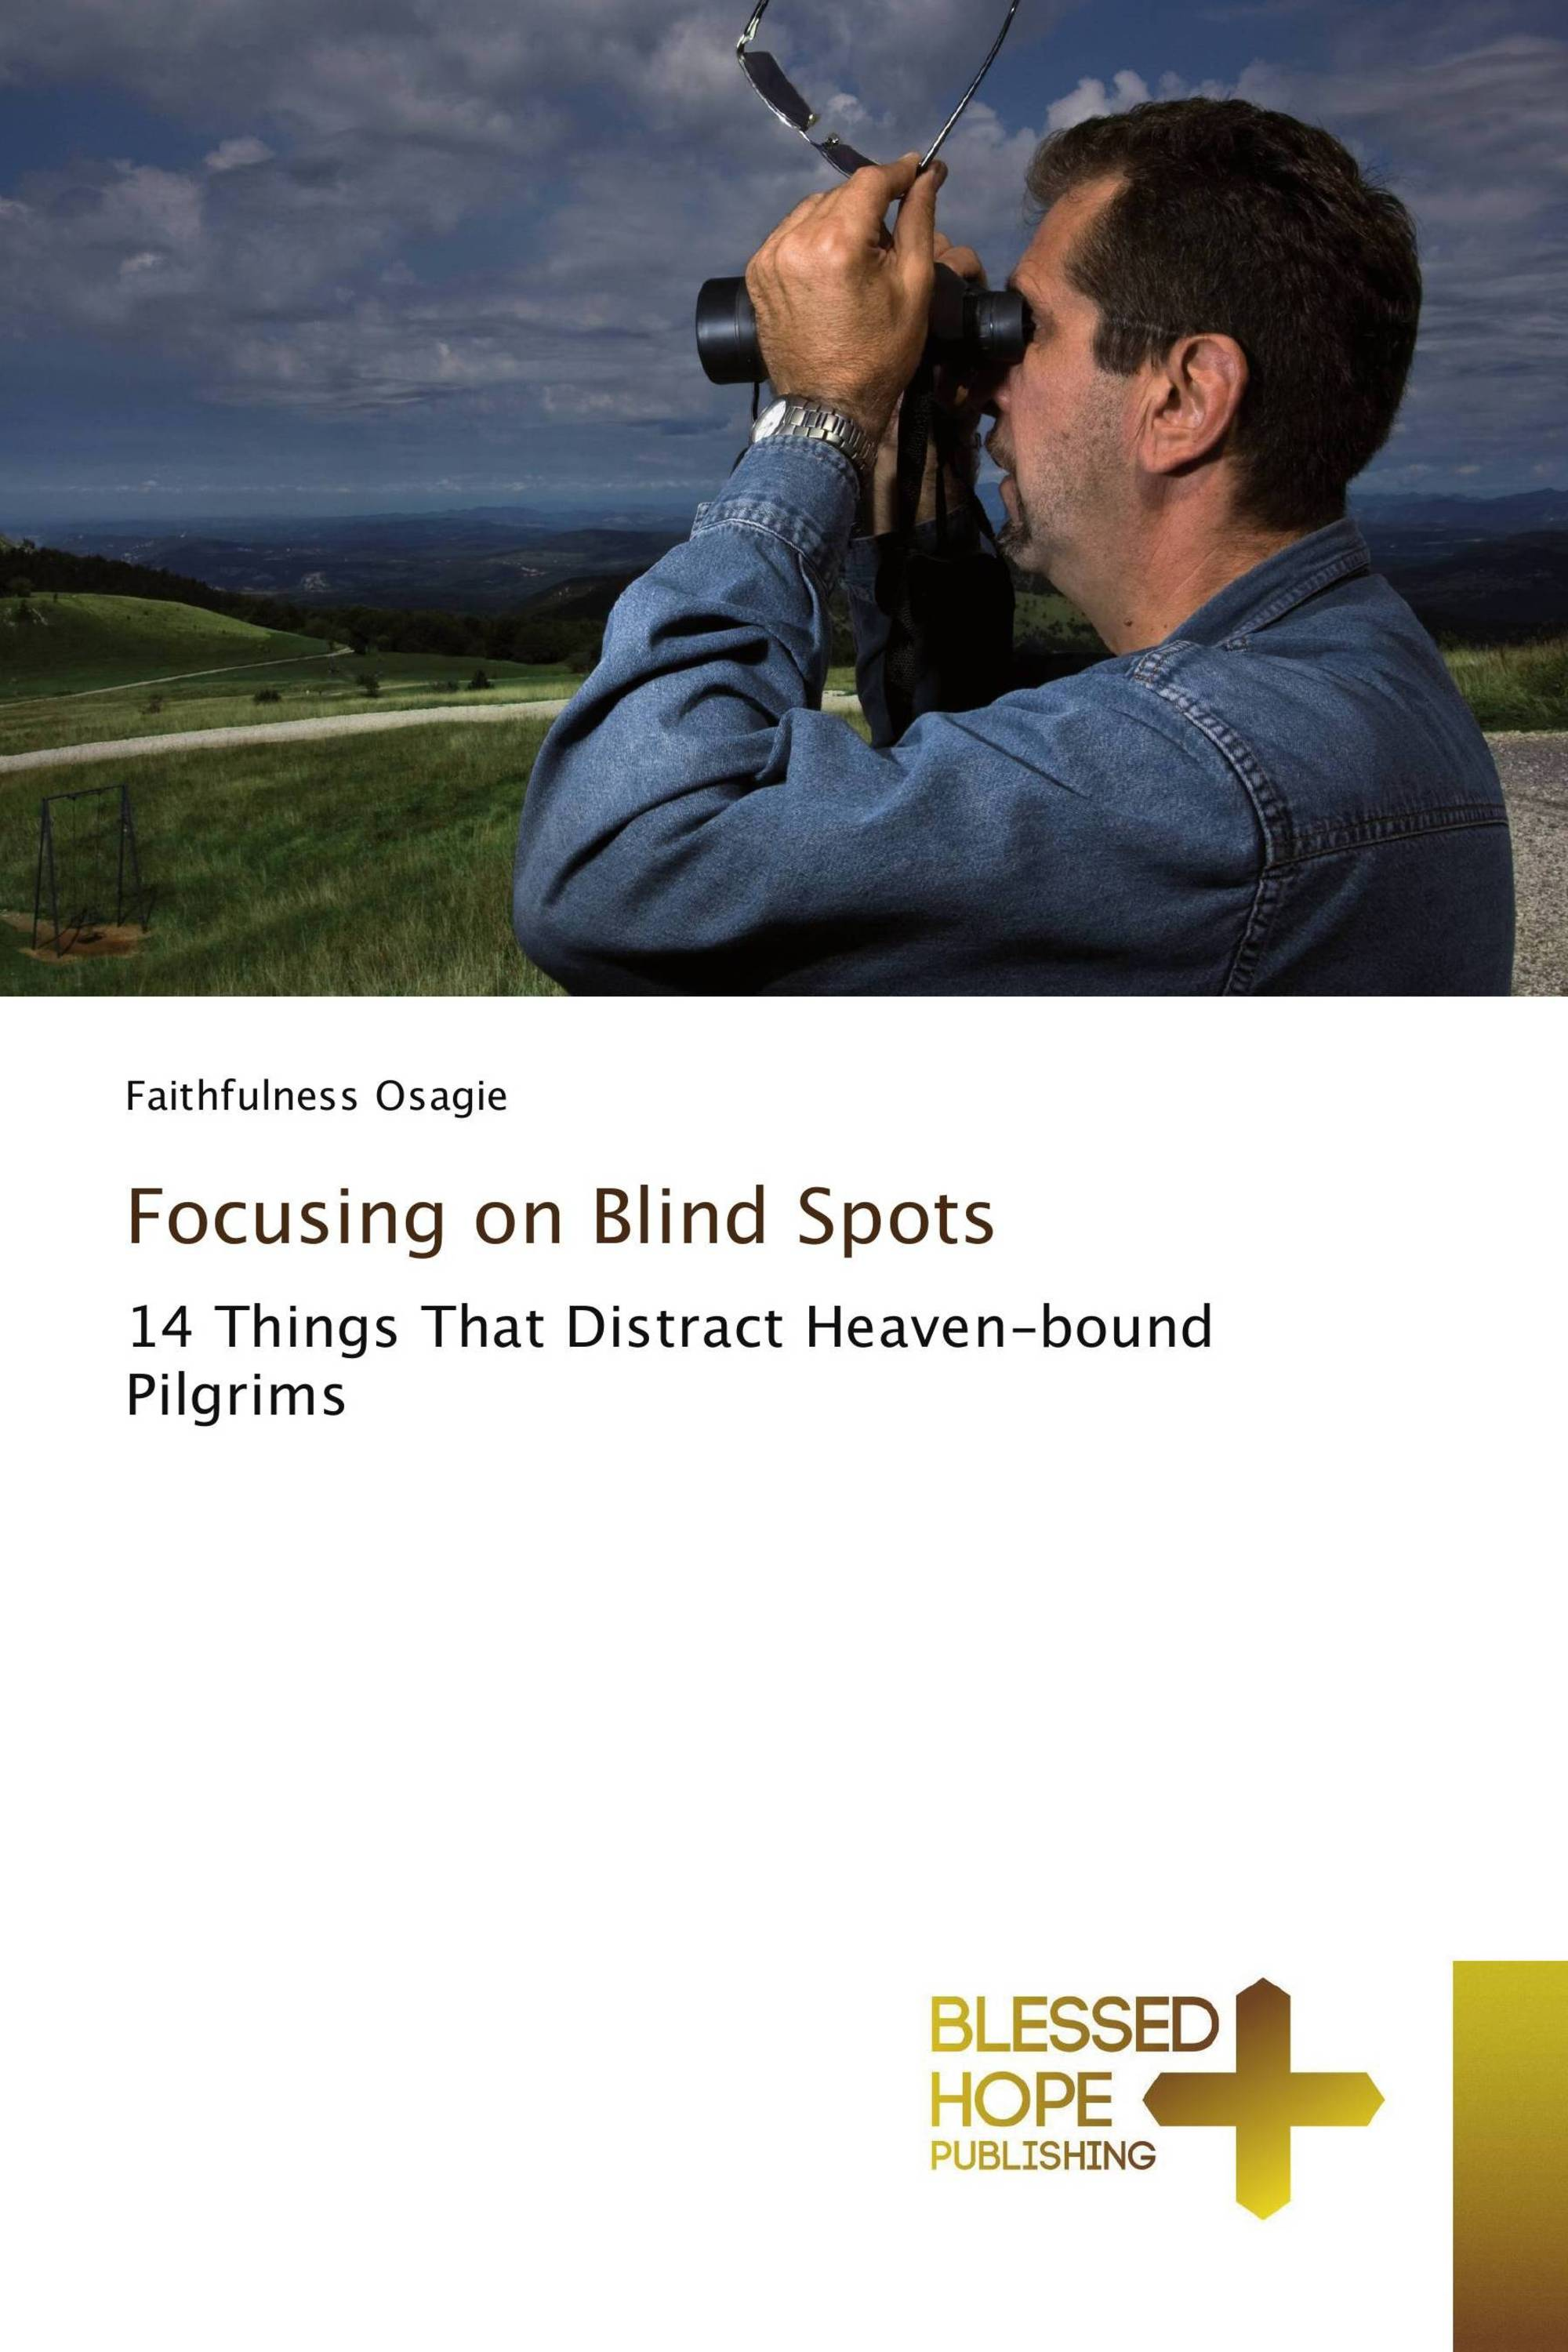 Focusing on Blind Spots